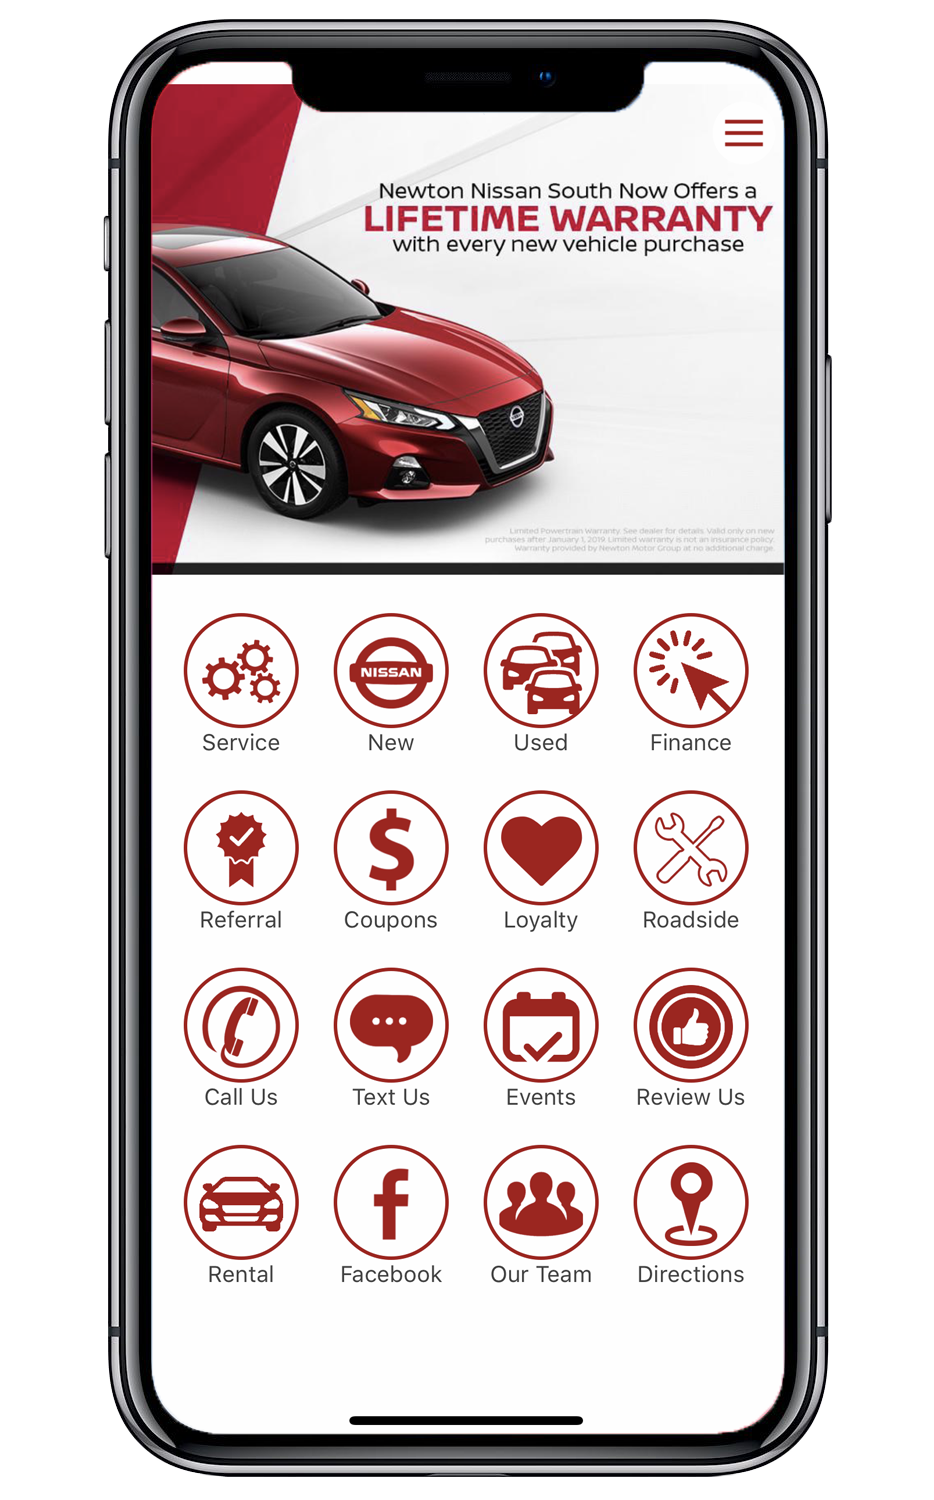 Newton Nissan South App